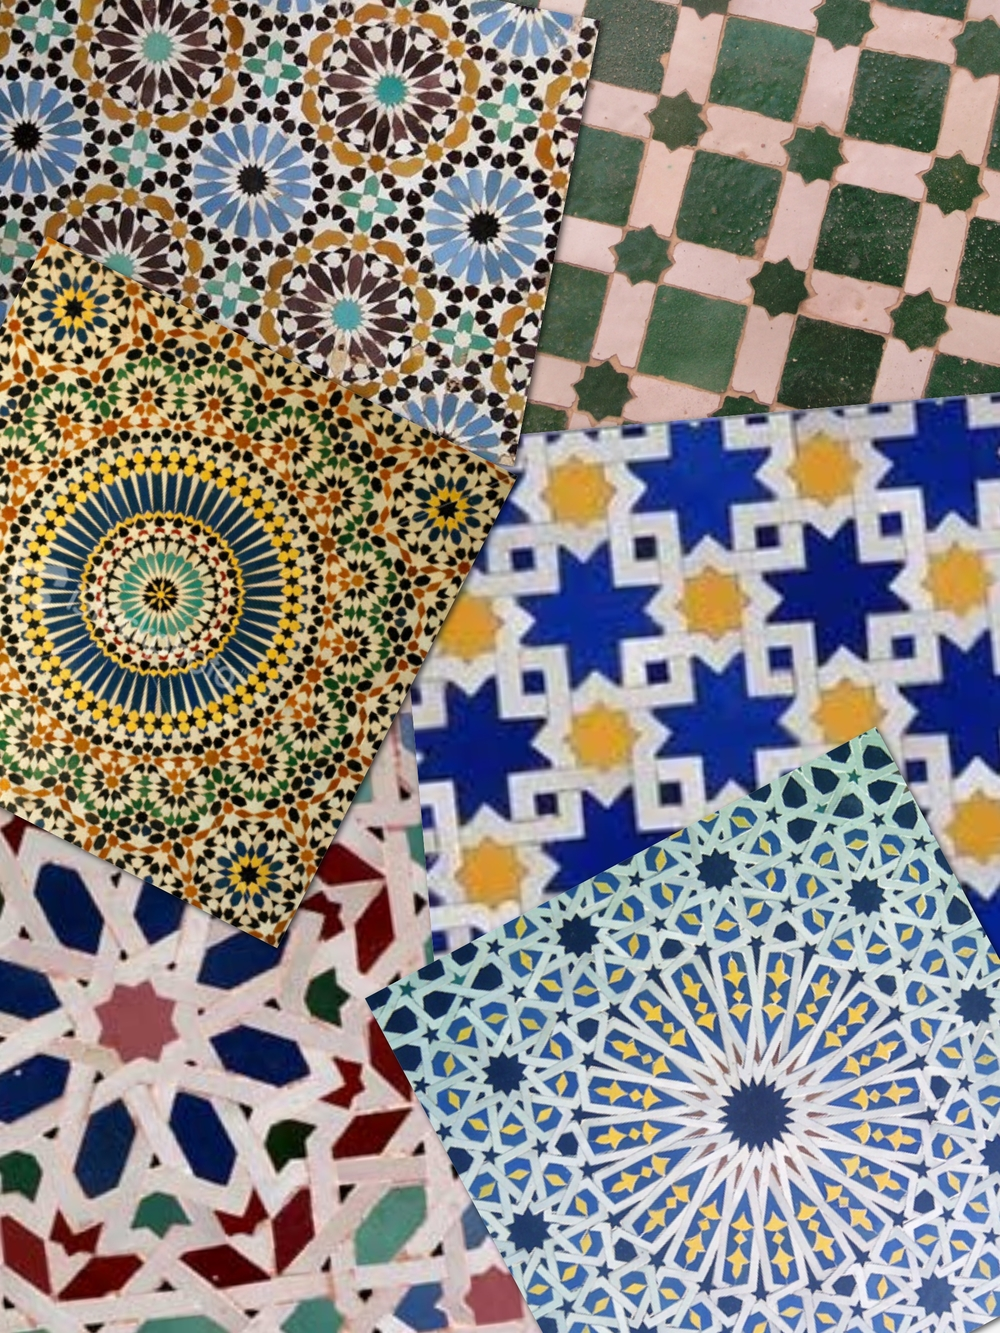 A collage with some of the tiles that I photographed while in Tangier last August